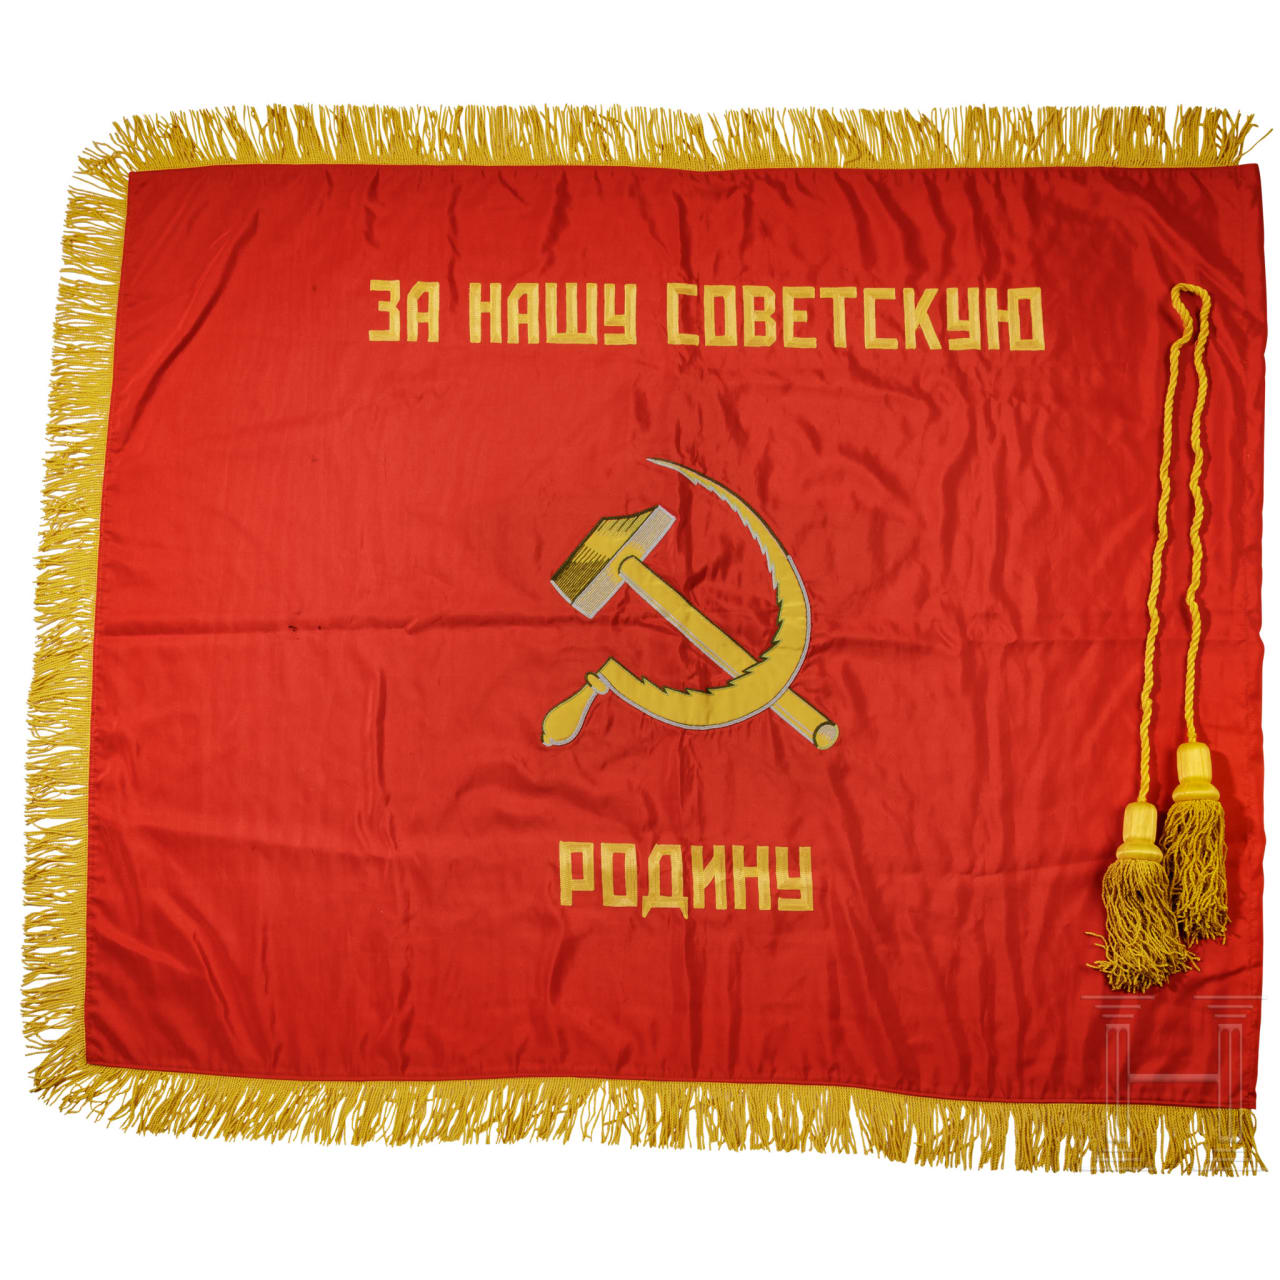 Flag of the 361st Helicopter Regiment, Soviet Union, 1970-1985